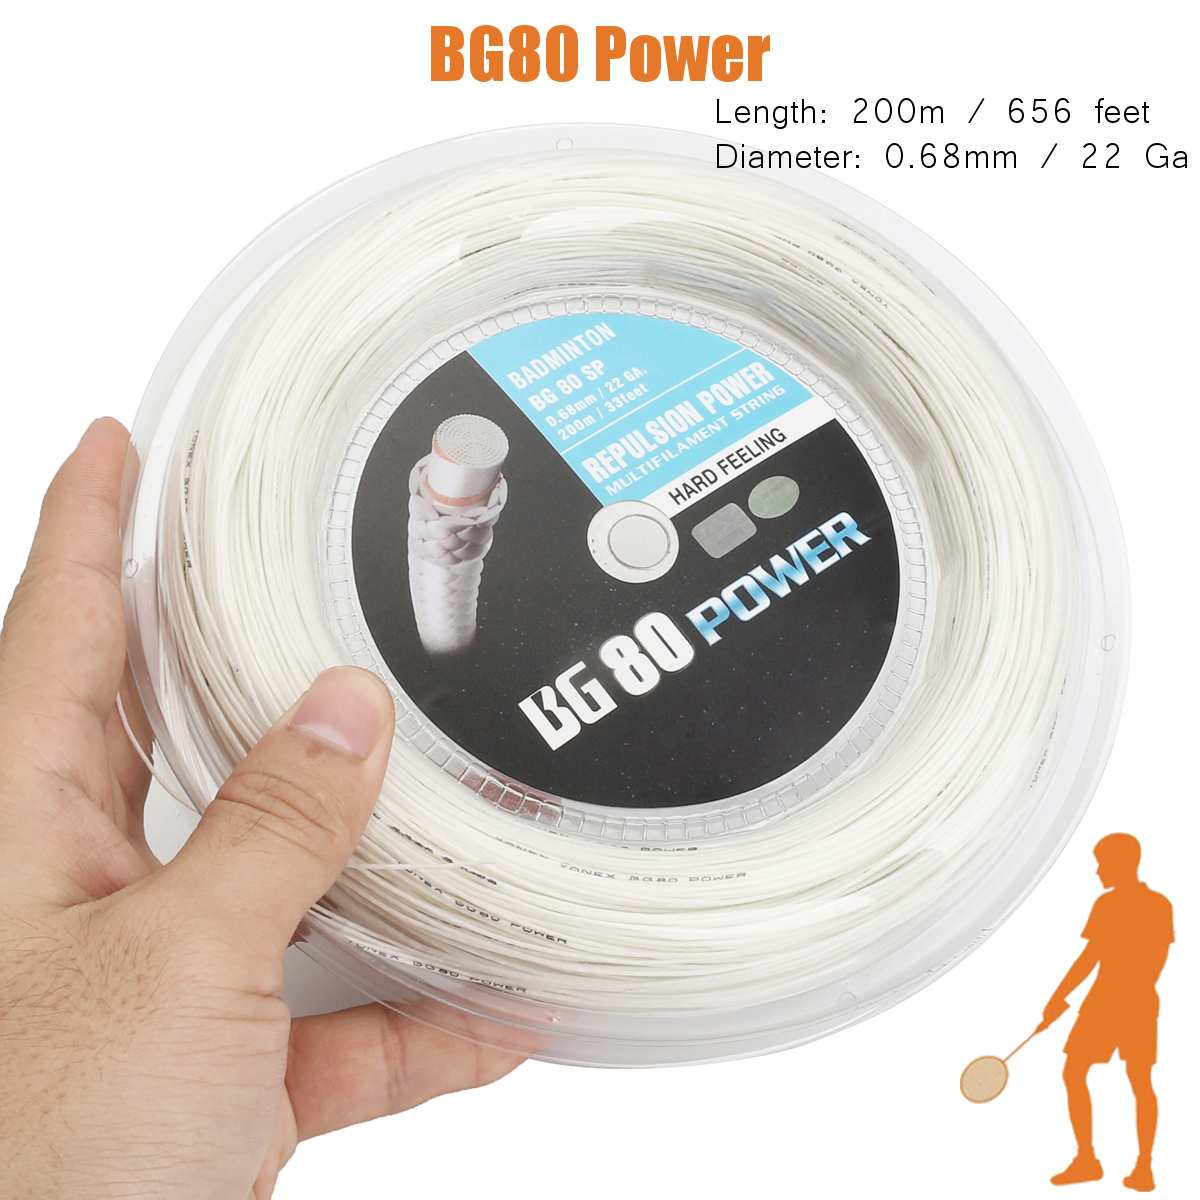 Hard Feeling 200m Long BG80 0.68mm Badminton String Badminton Racket String